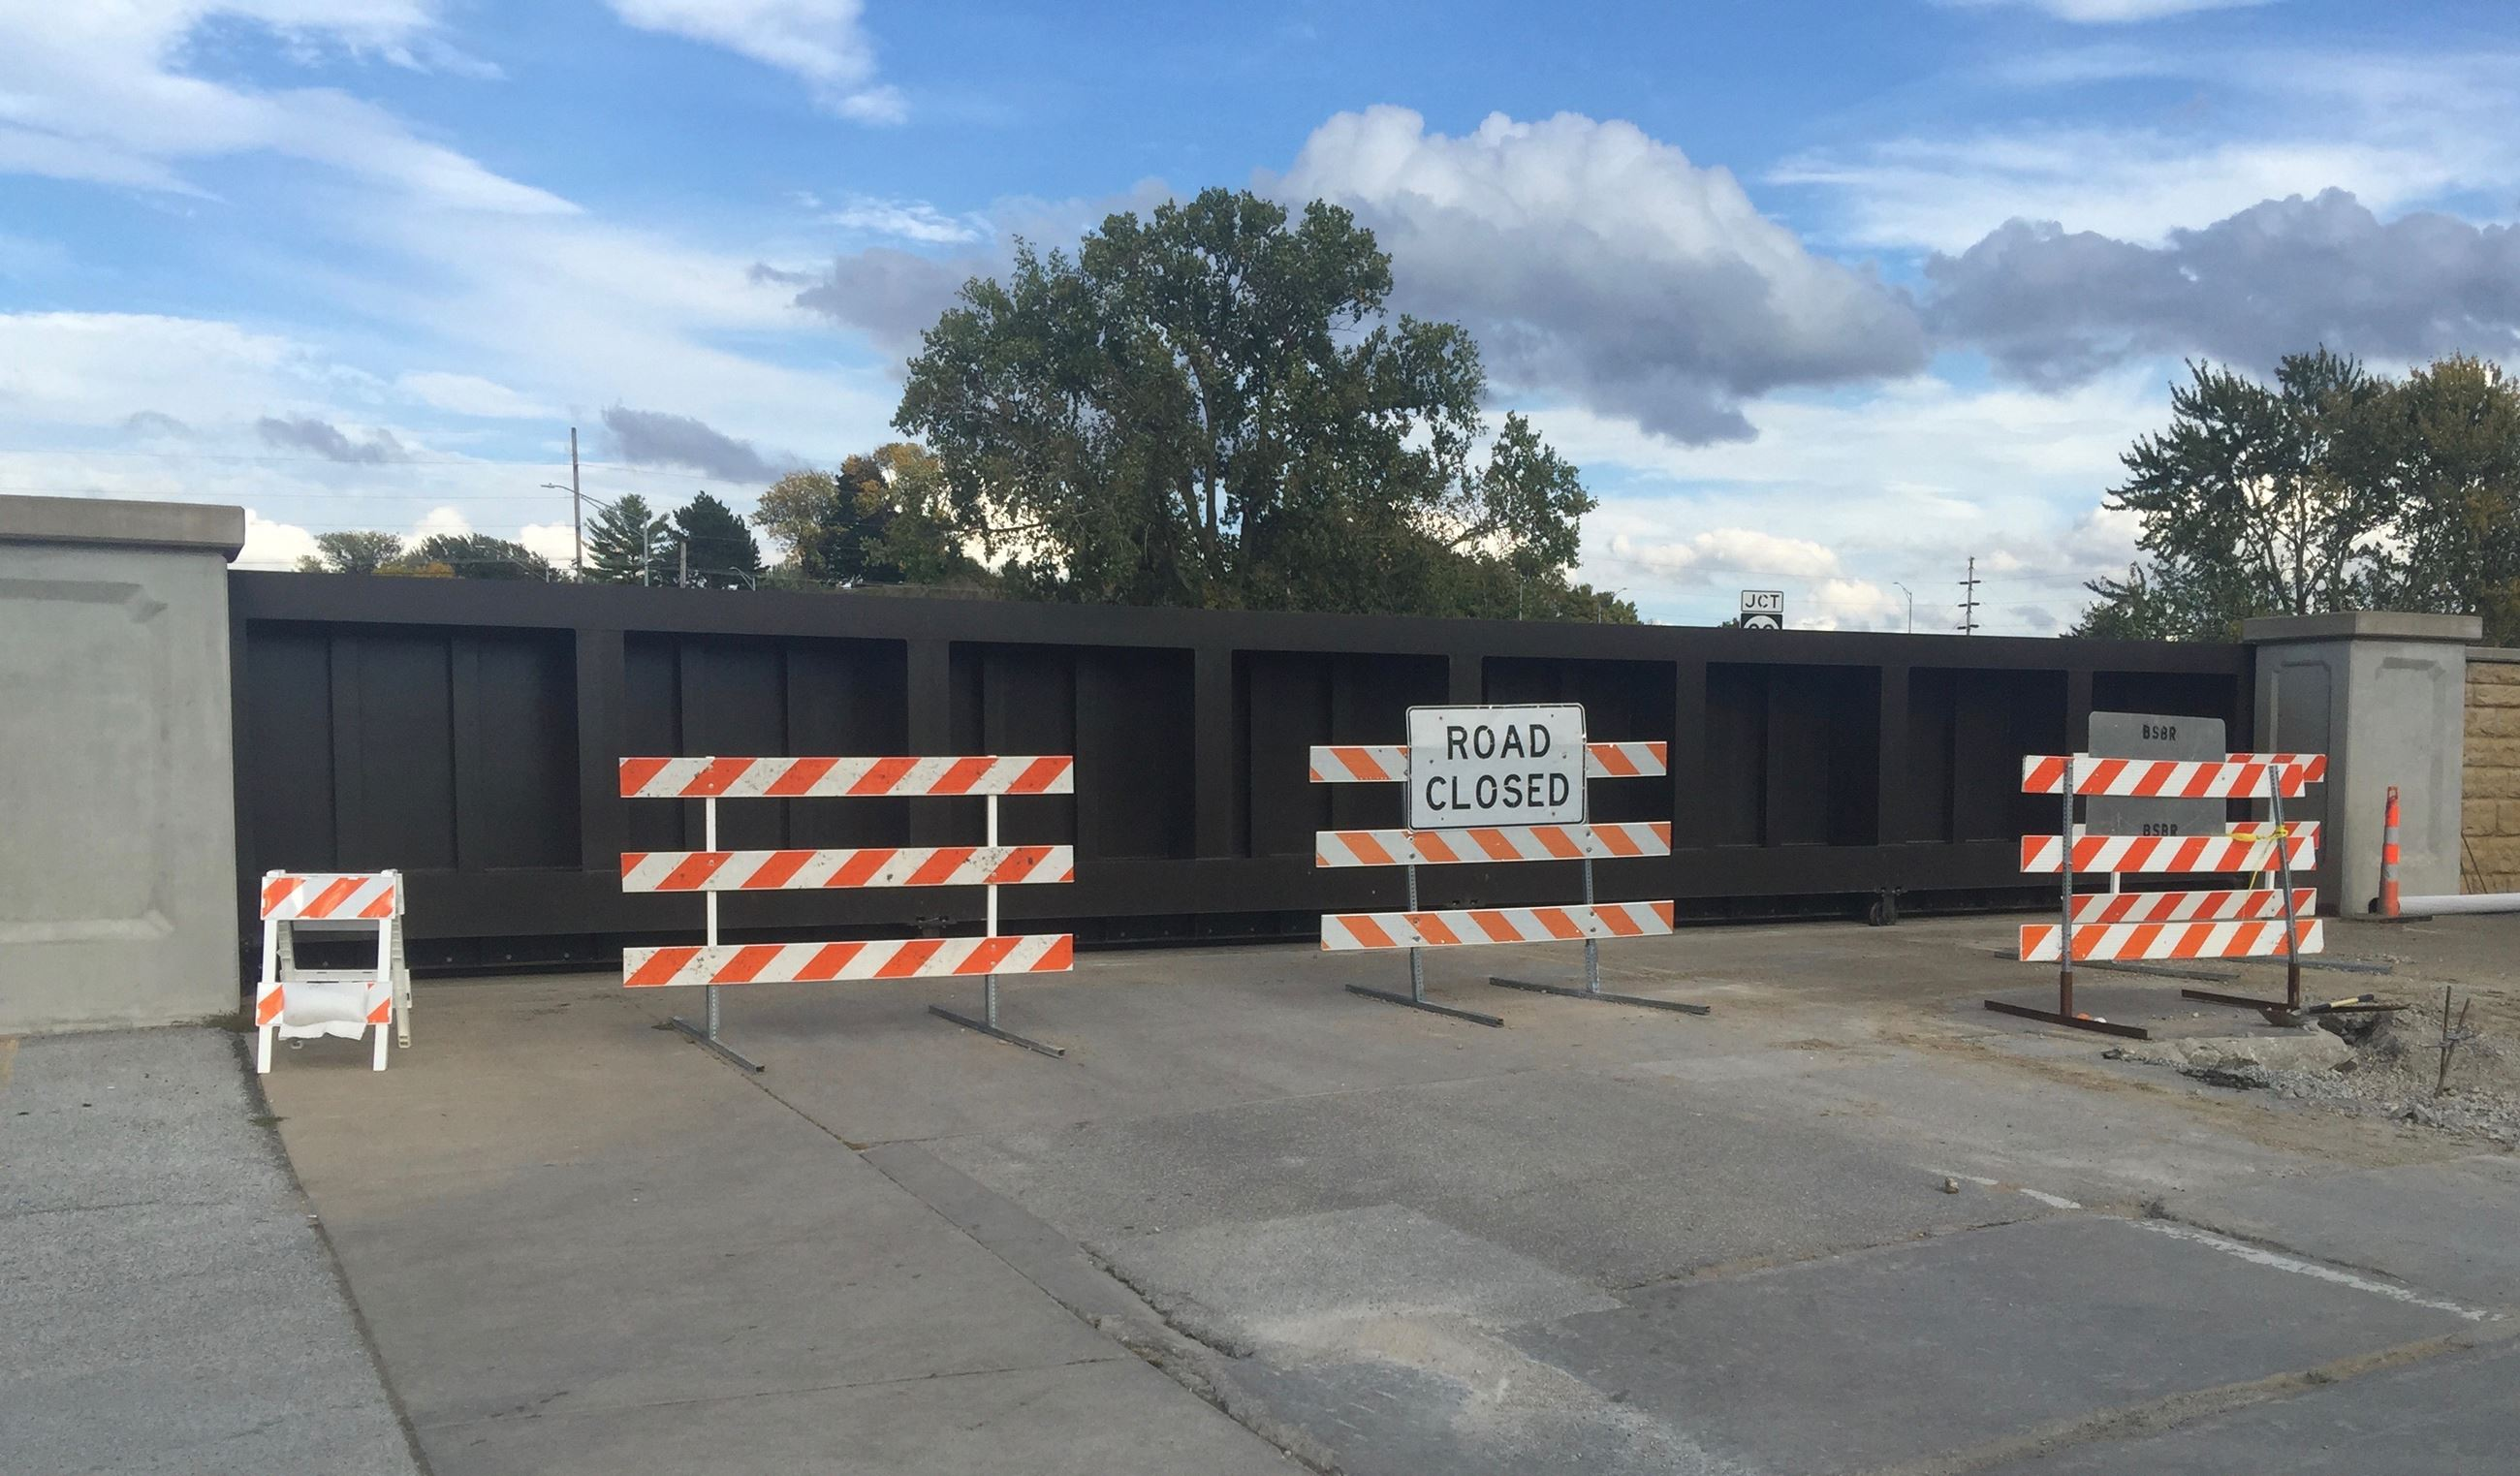 10/09/2018 Flood Wall Closed